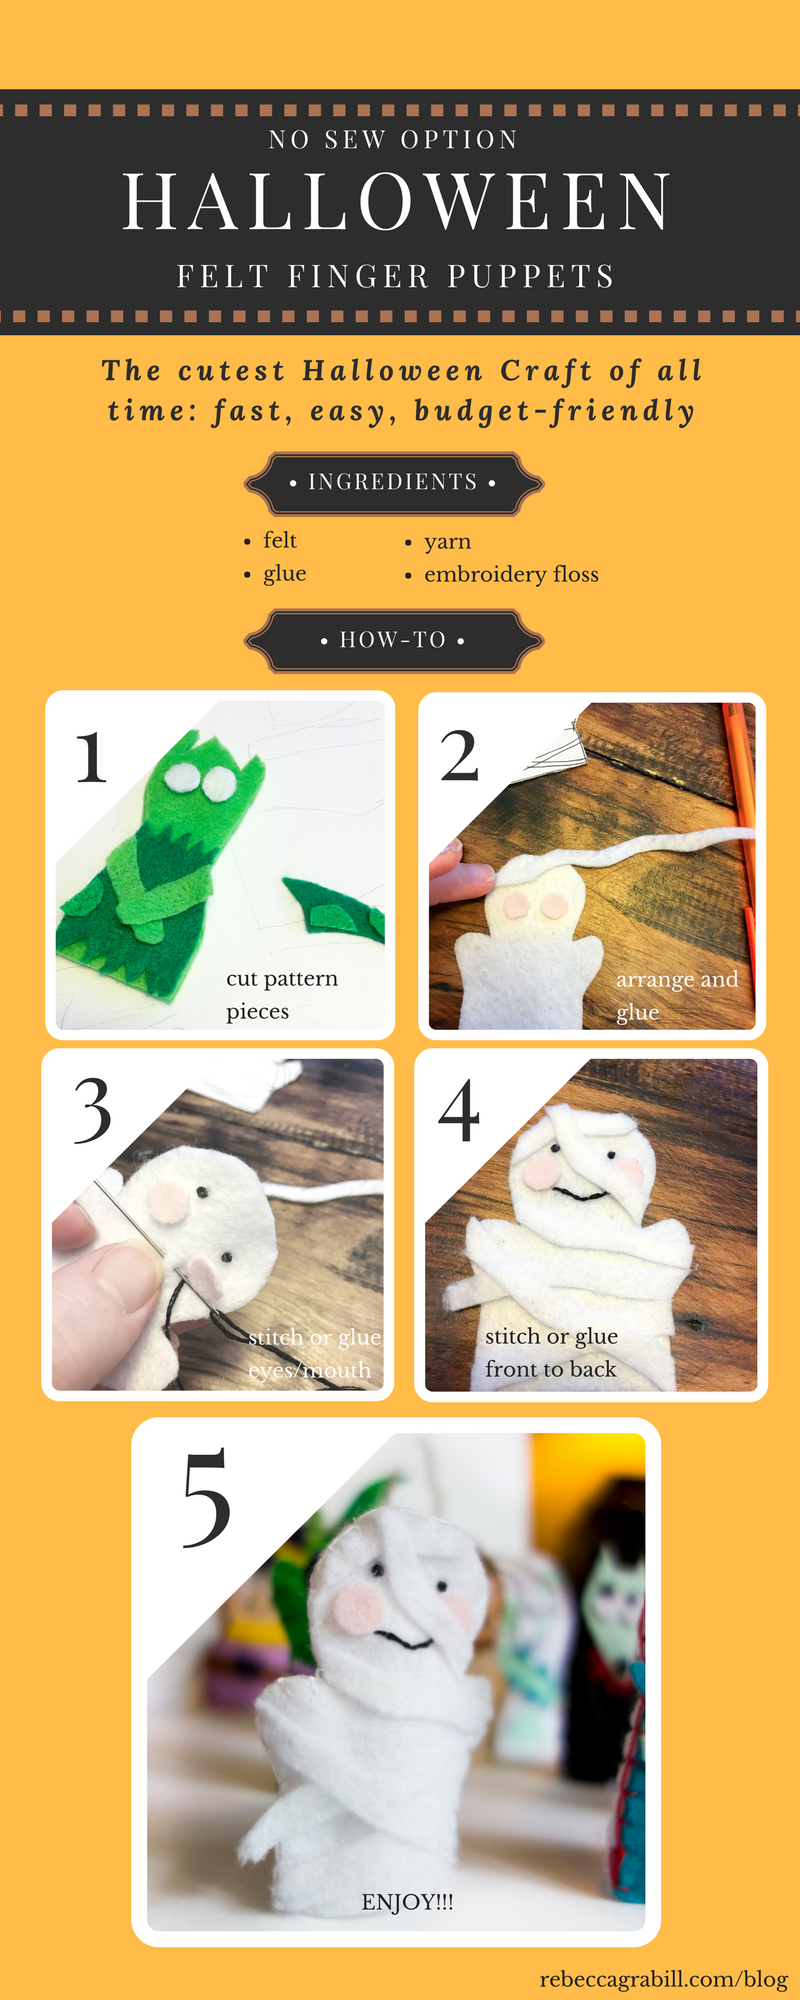 How to Make Halloween Good Night Finger Puppets - A helpful infographic!